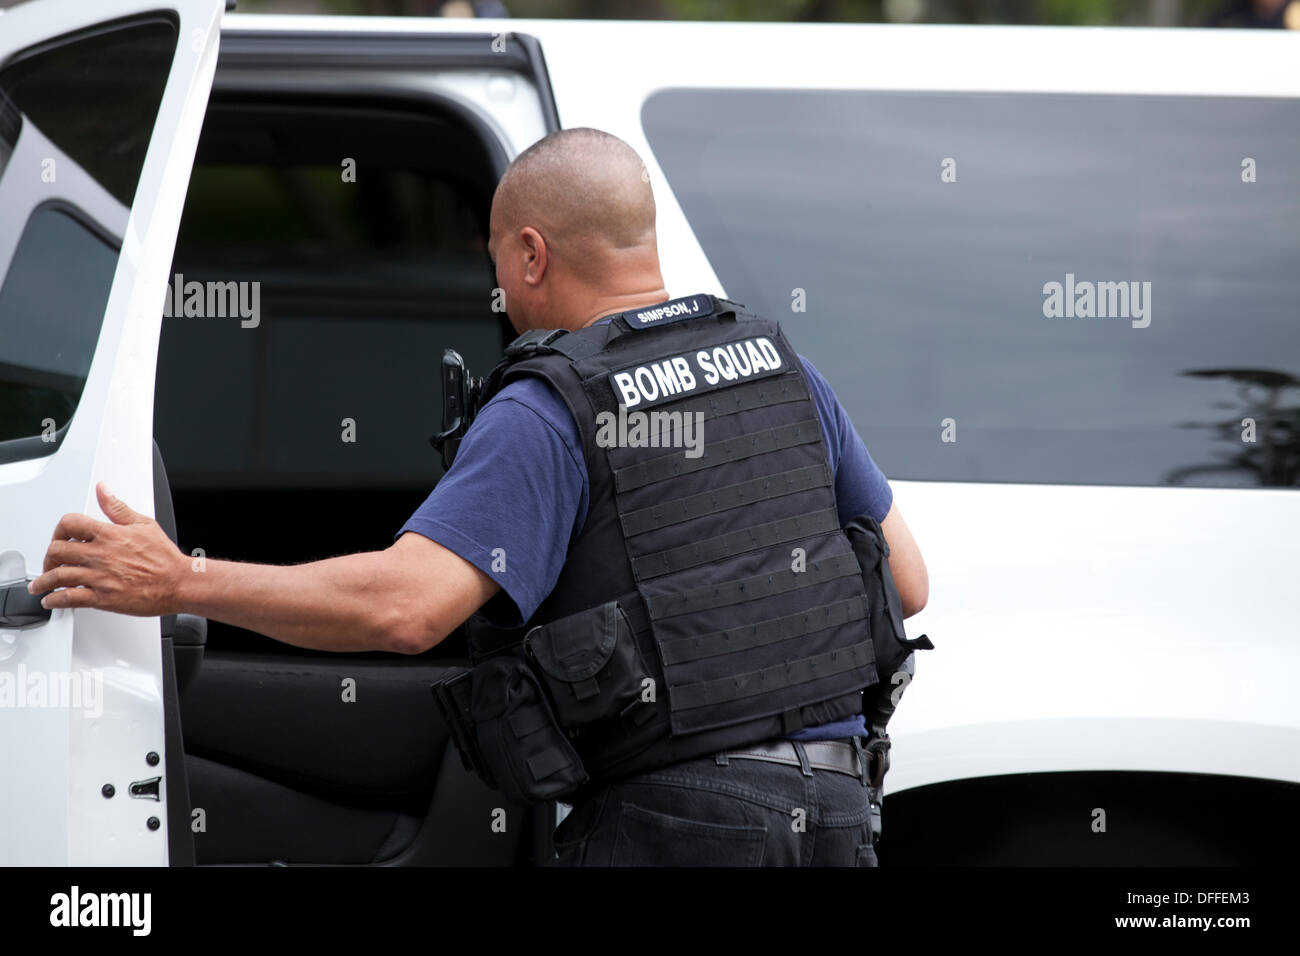 Bomb Squad technician with bullet proof vest Stock Photo